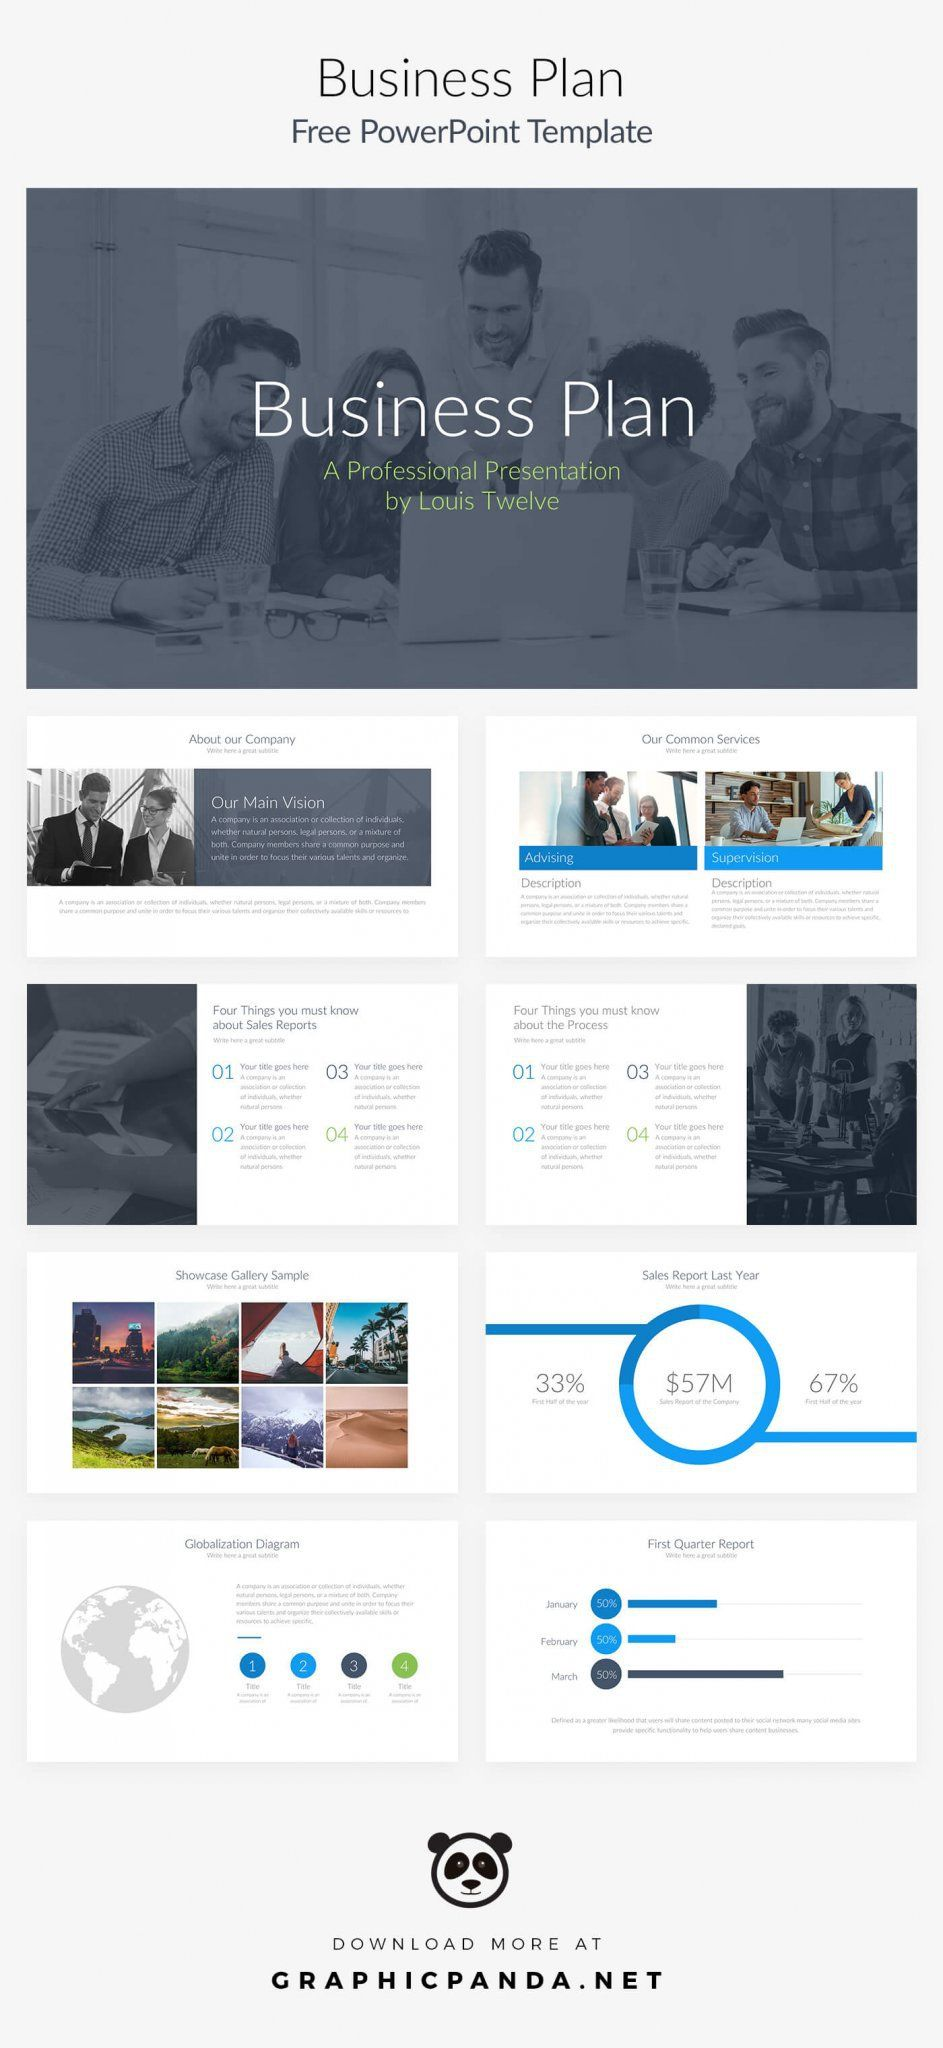 Business plan free powerpoint themes business pinterest business plan free powerpoint themes toneelgroepblik Image collections